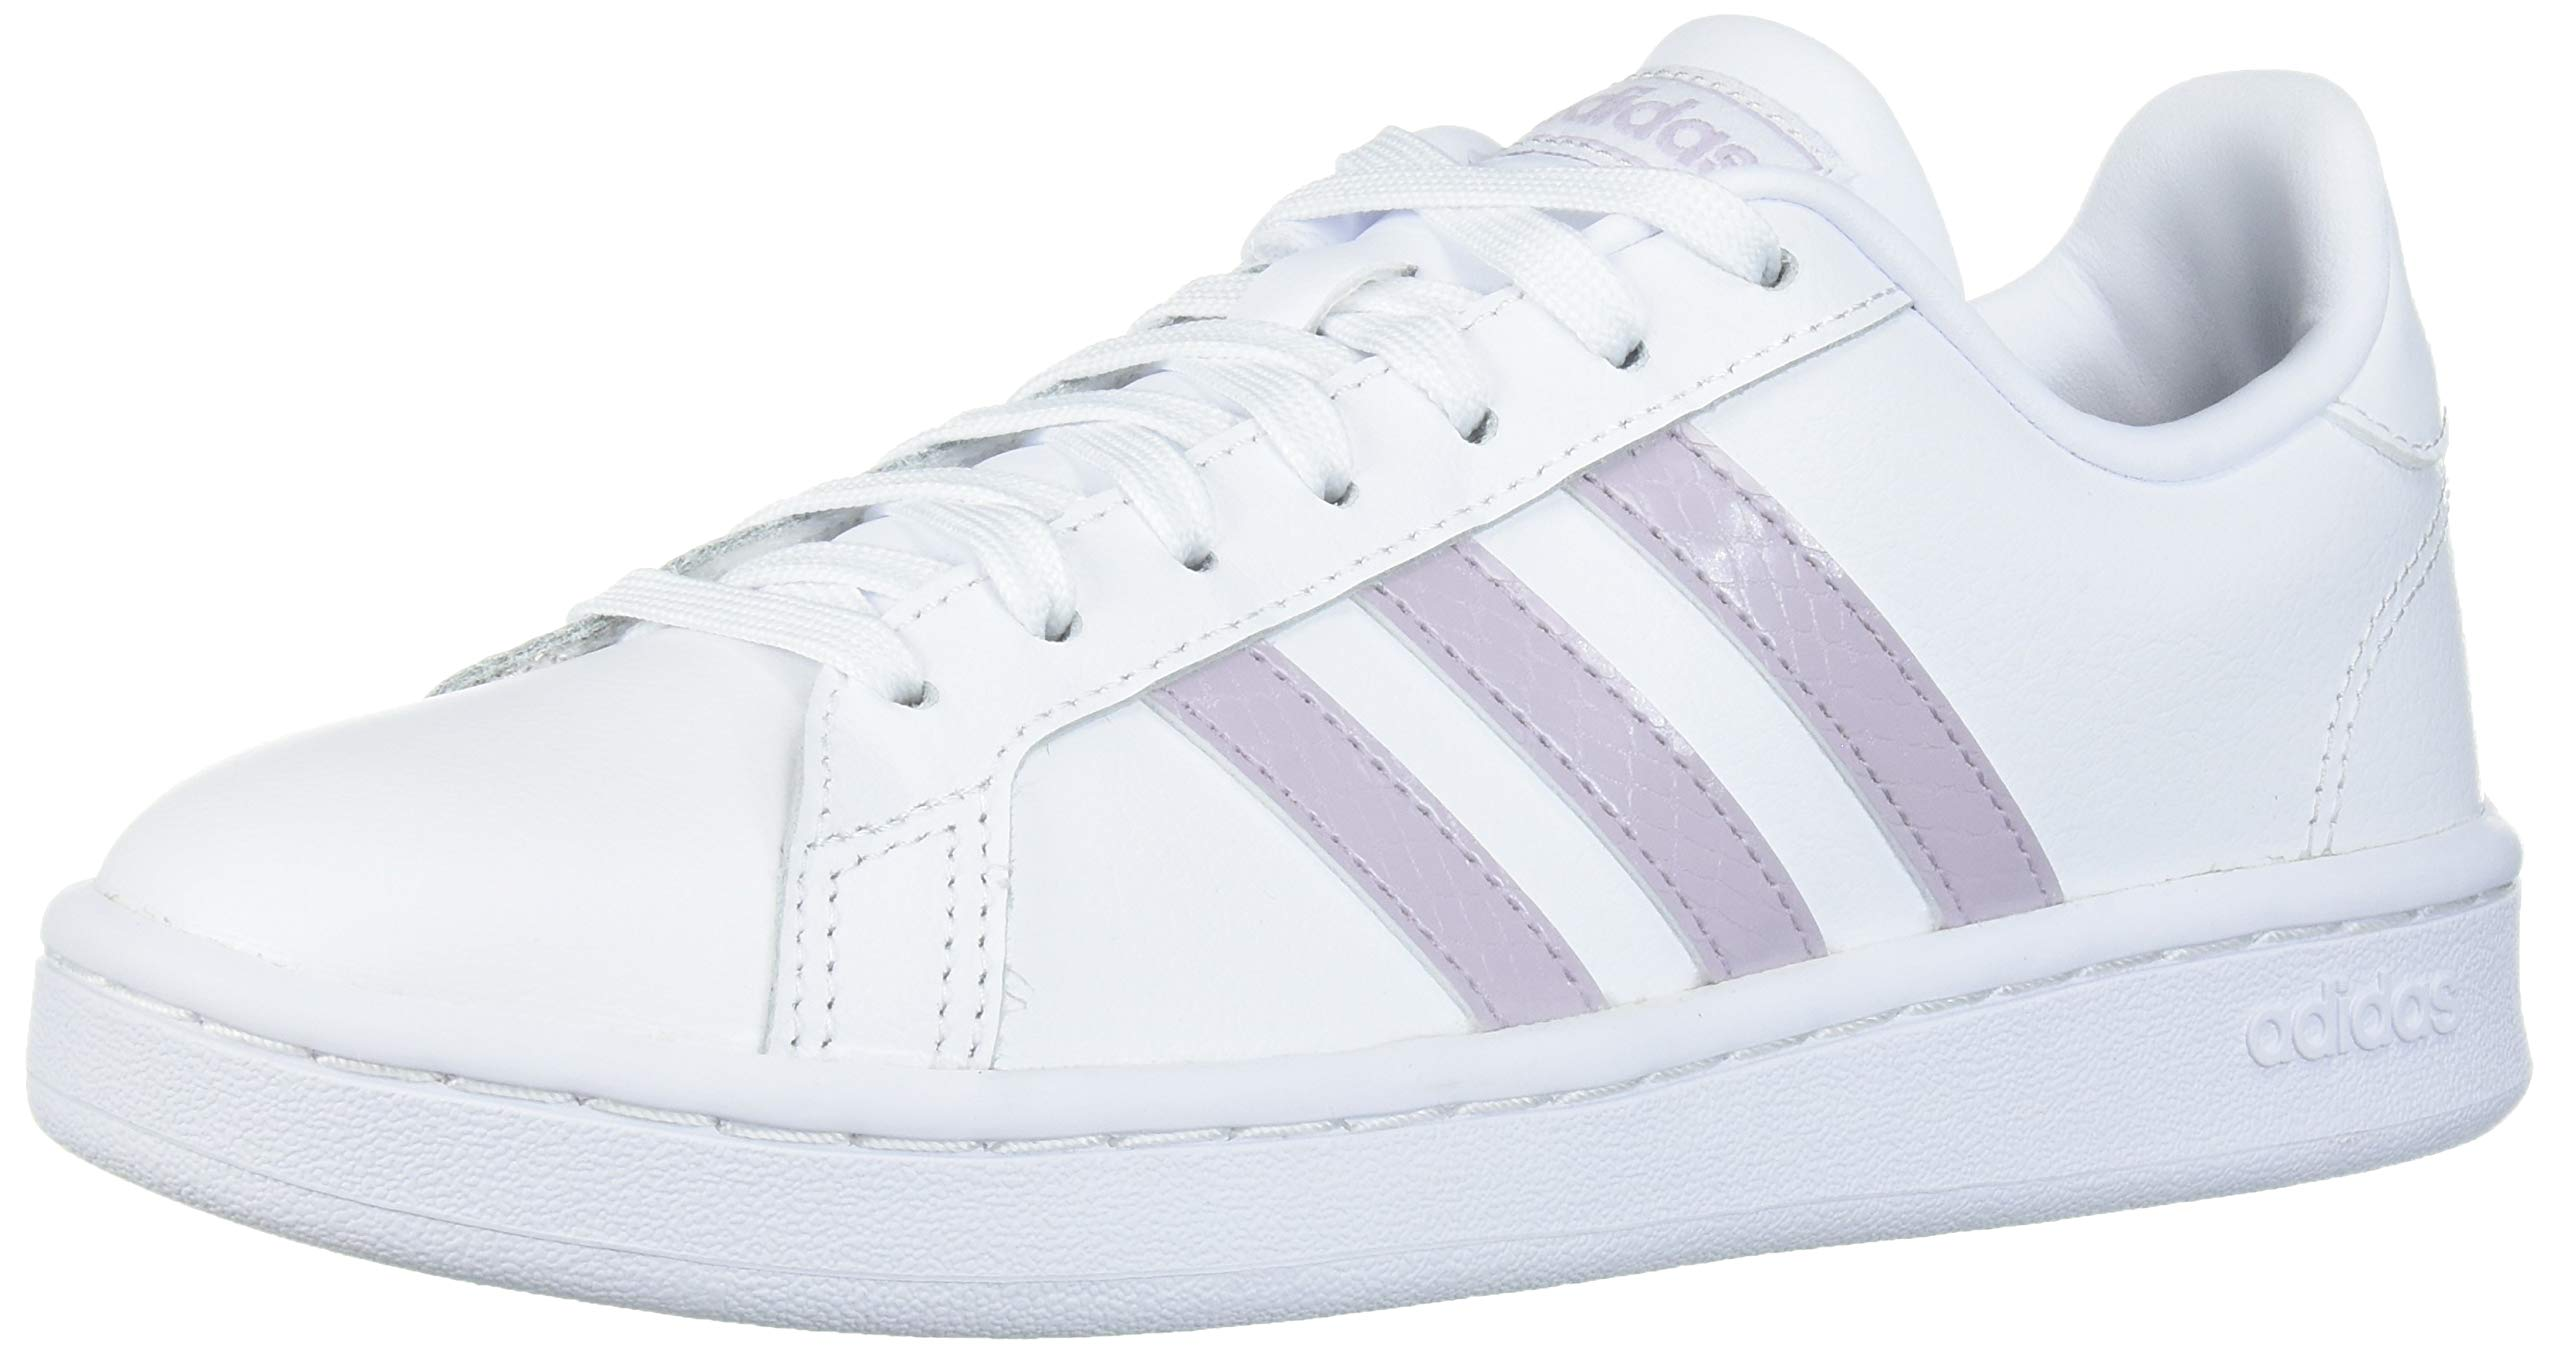 adidas Women's Grand Court Track and Field Shoe, ftwr white/mauve/grey two, 9 Standard US Width US